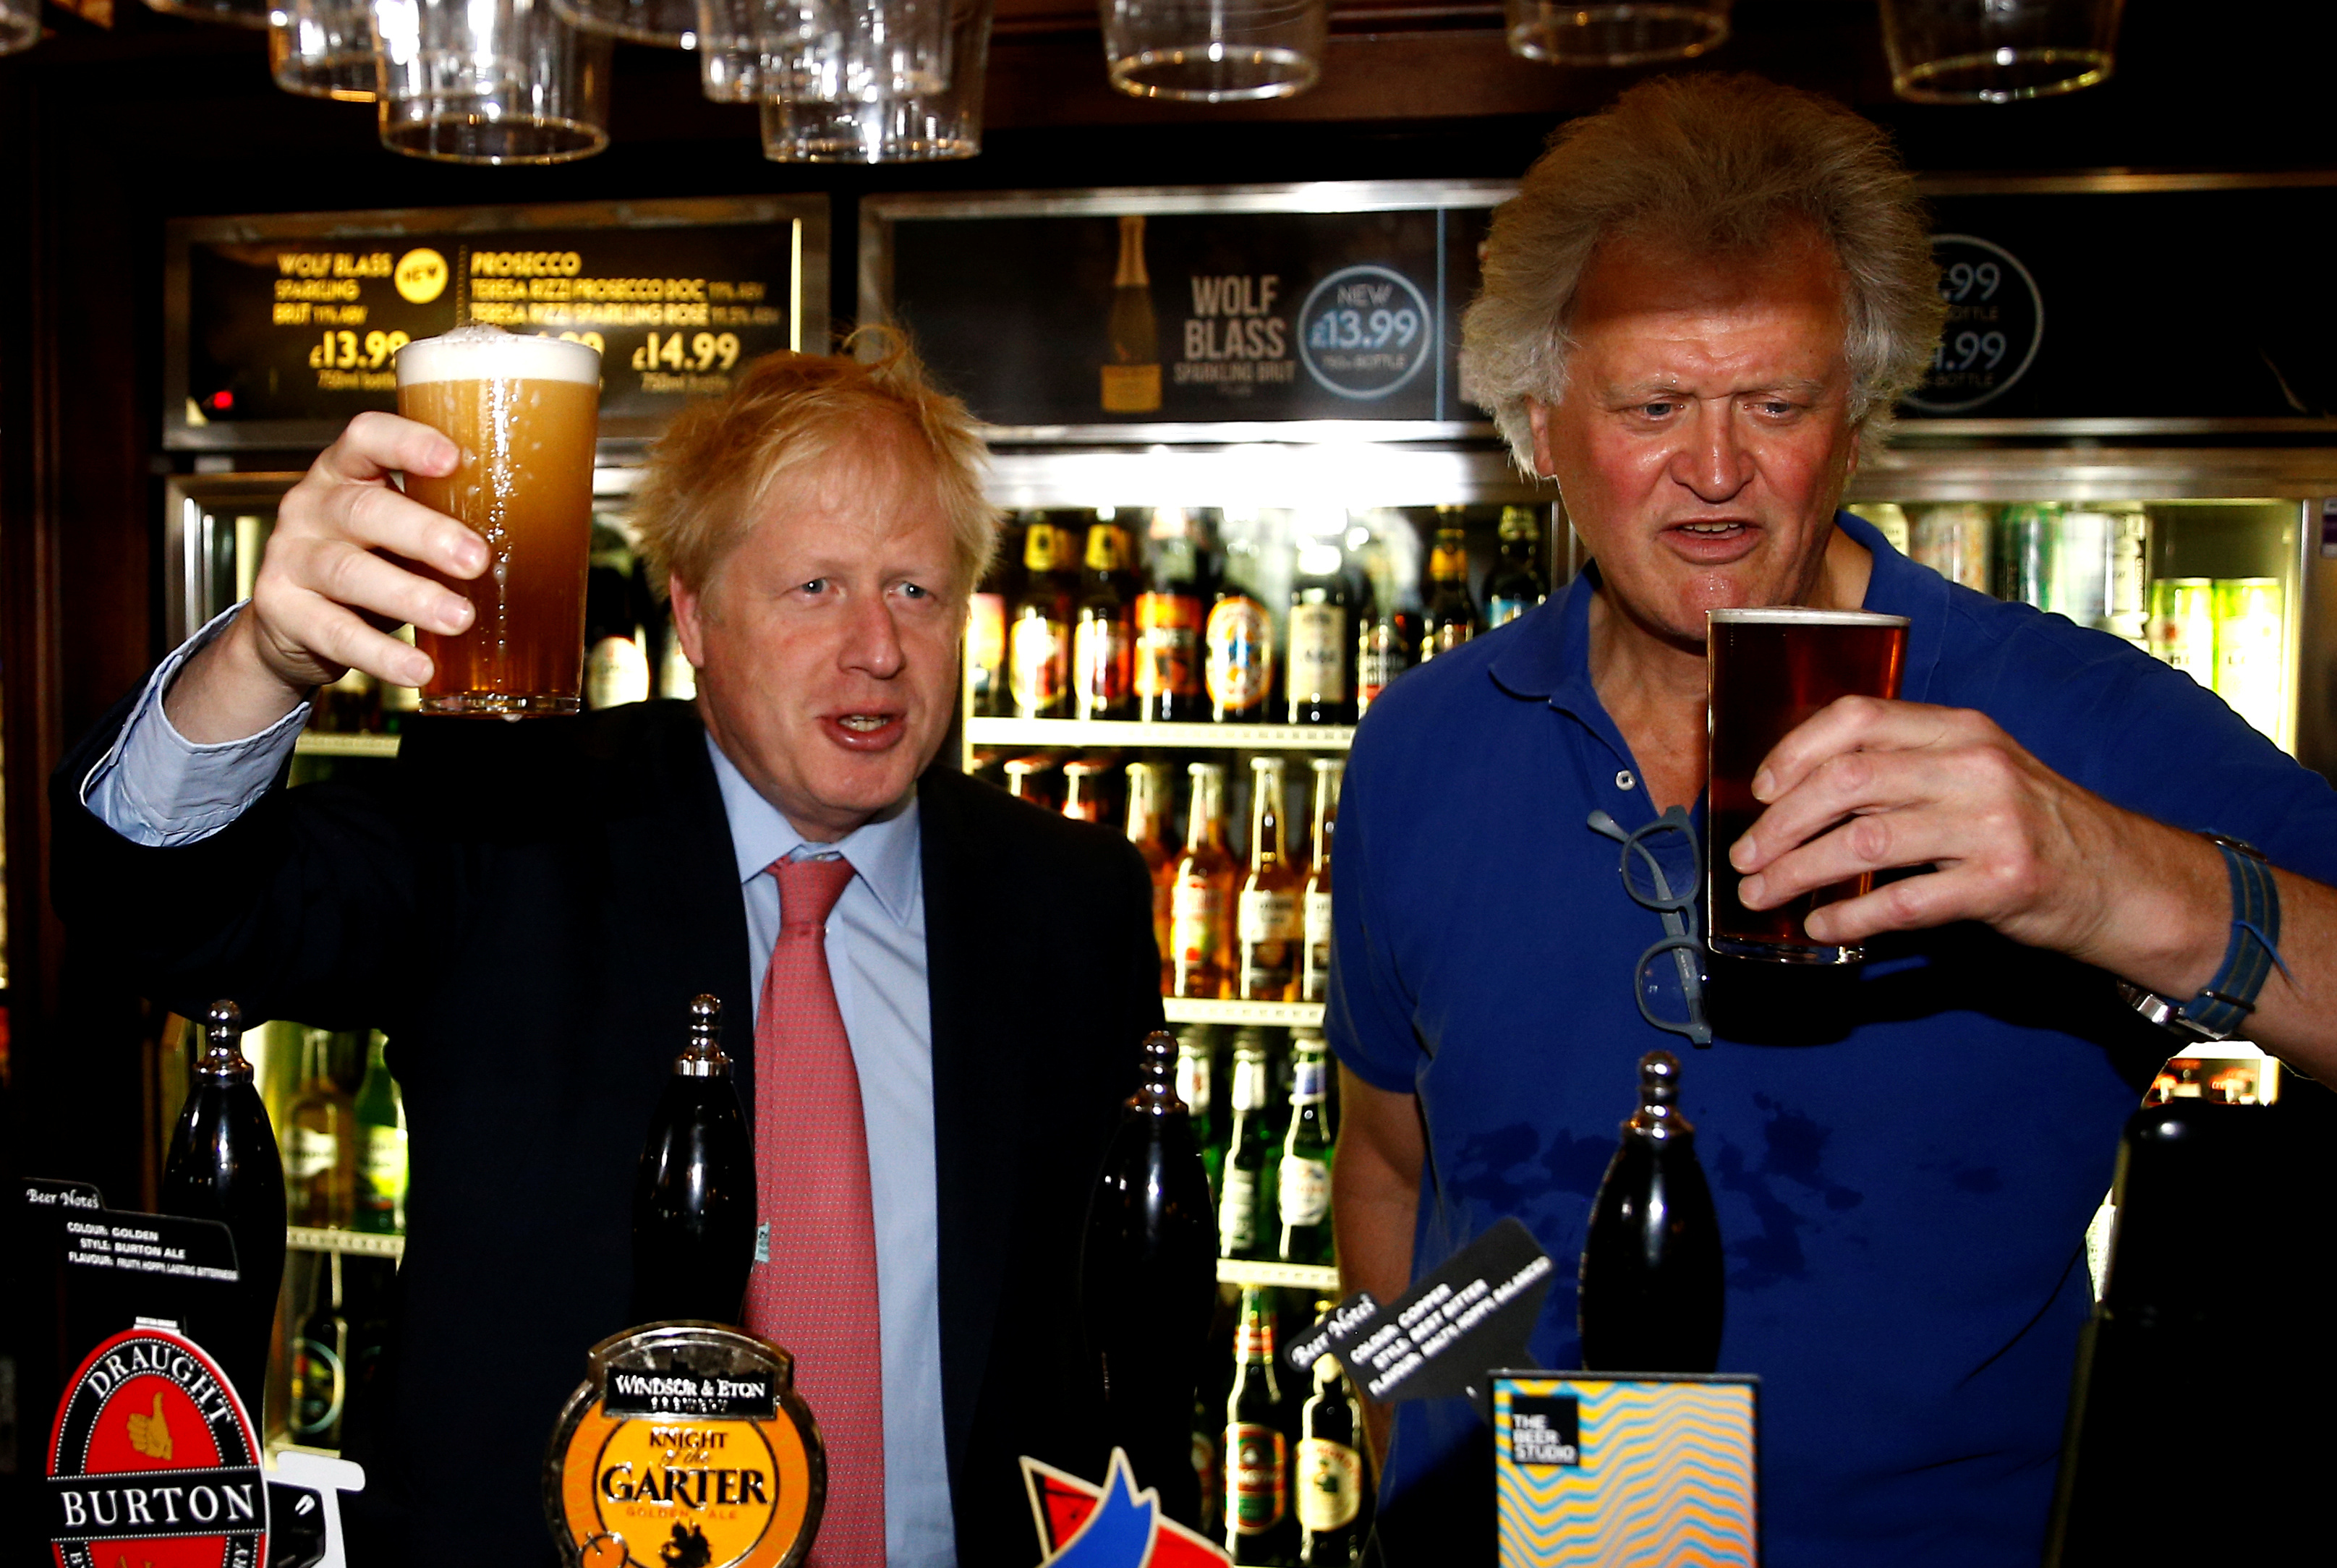 Conservative Party leadership candidate Boris Johnson during a visit to Wetherspoons Metropolitan Bar in London with Tim Martin, Chairman of JD Wetherspoon.